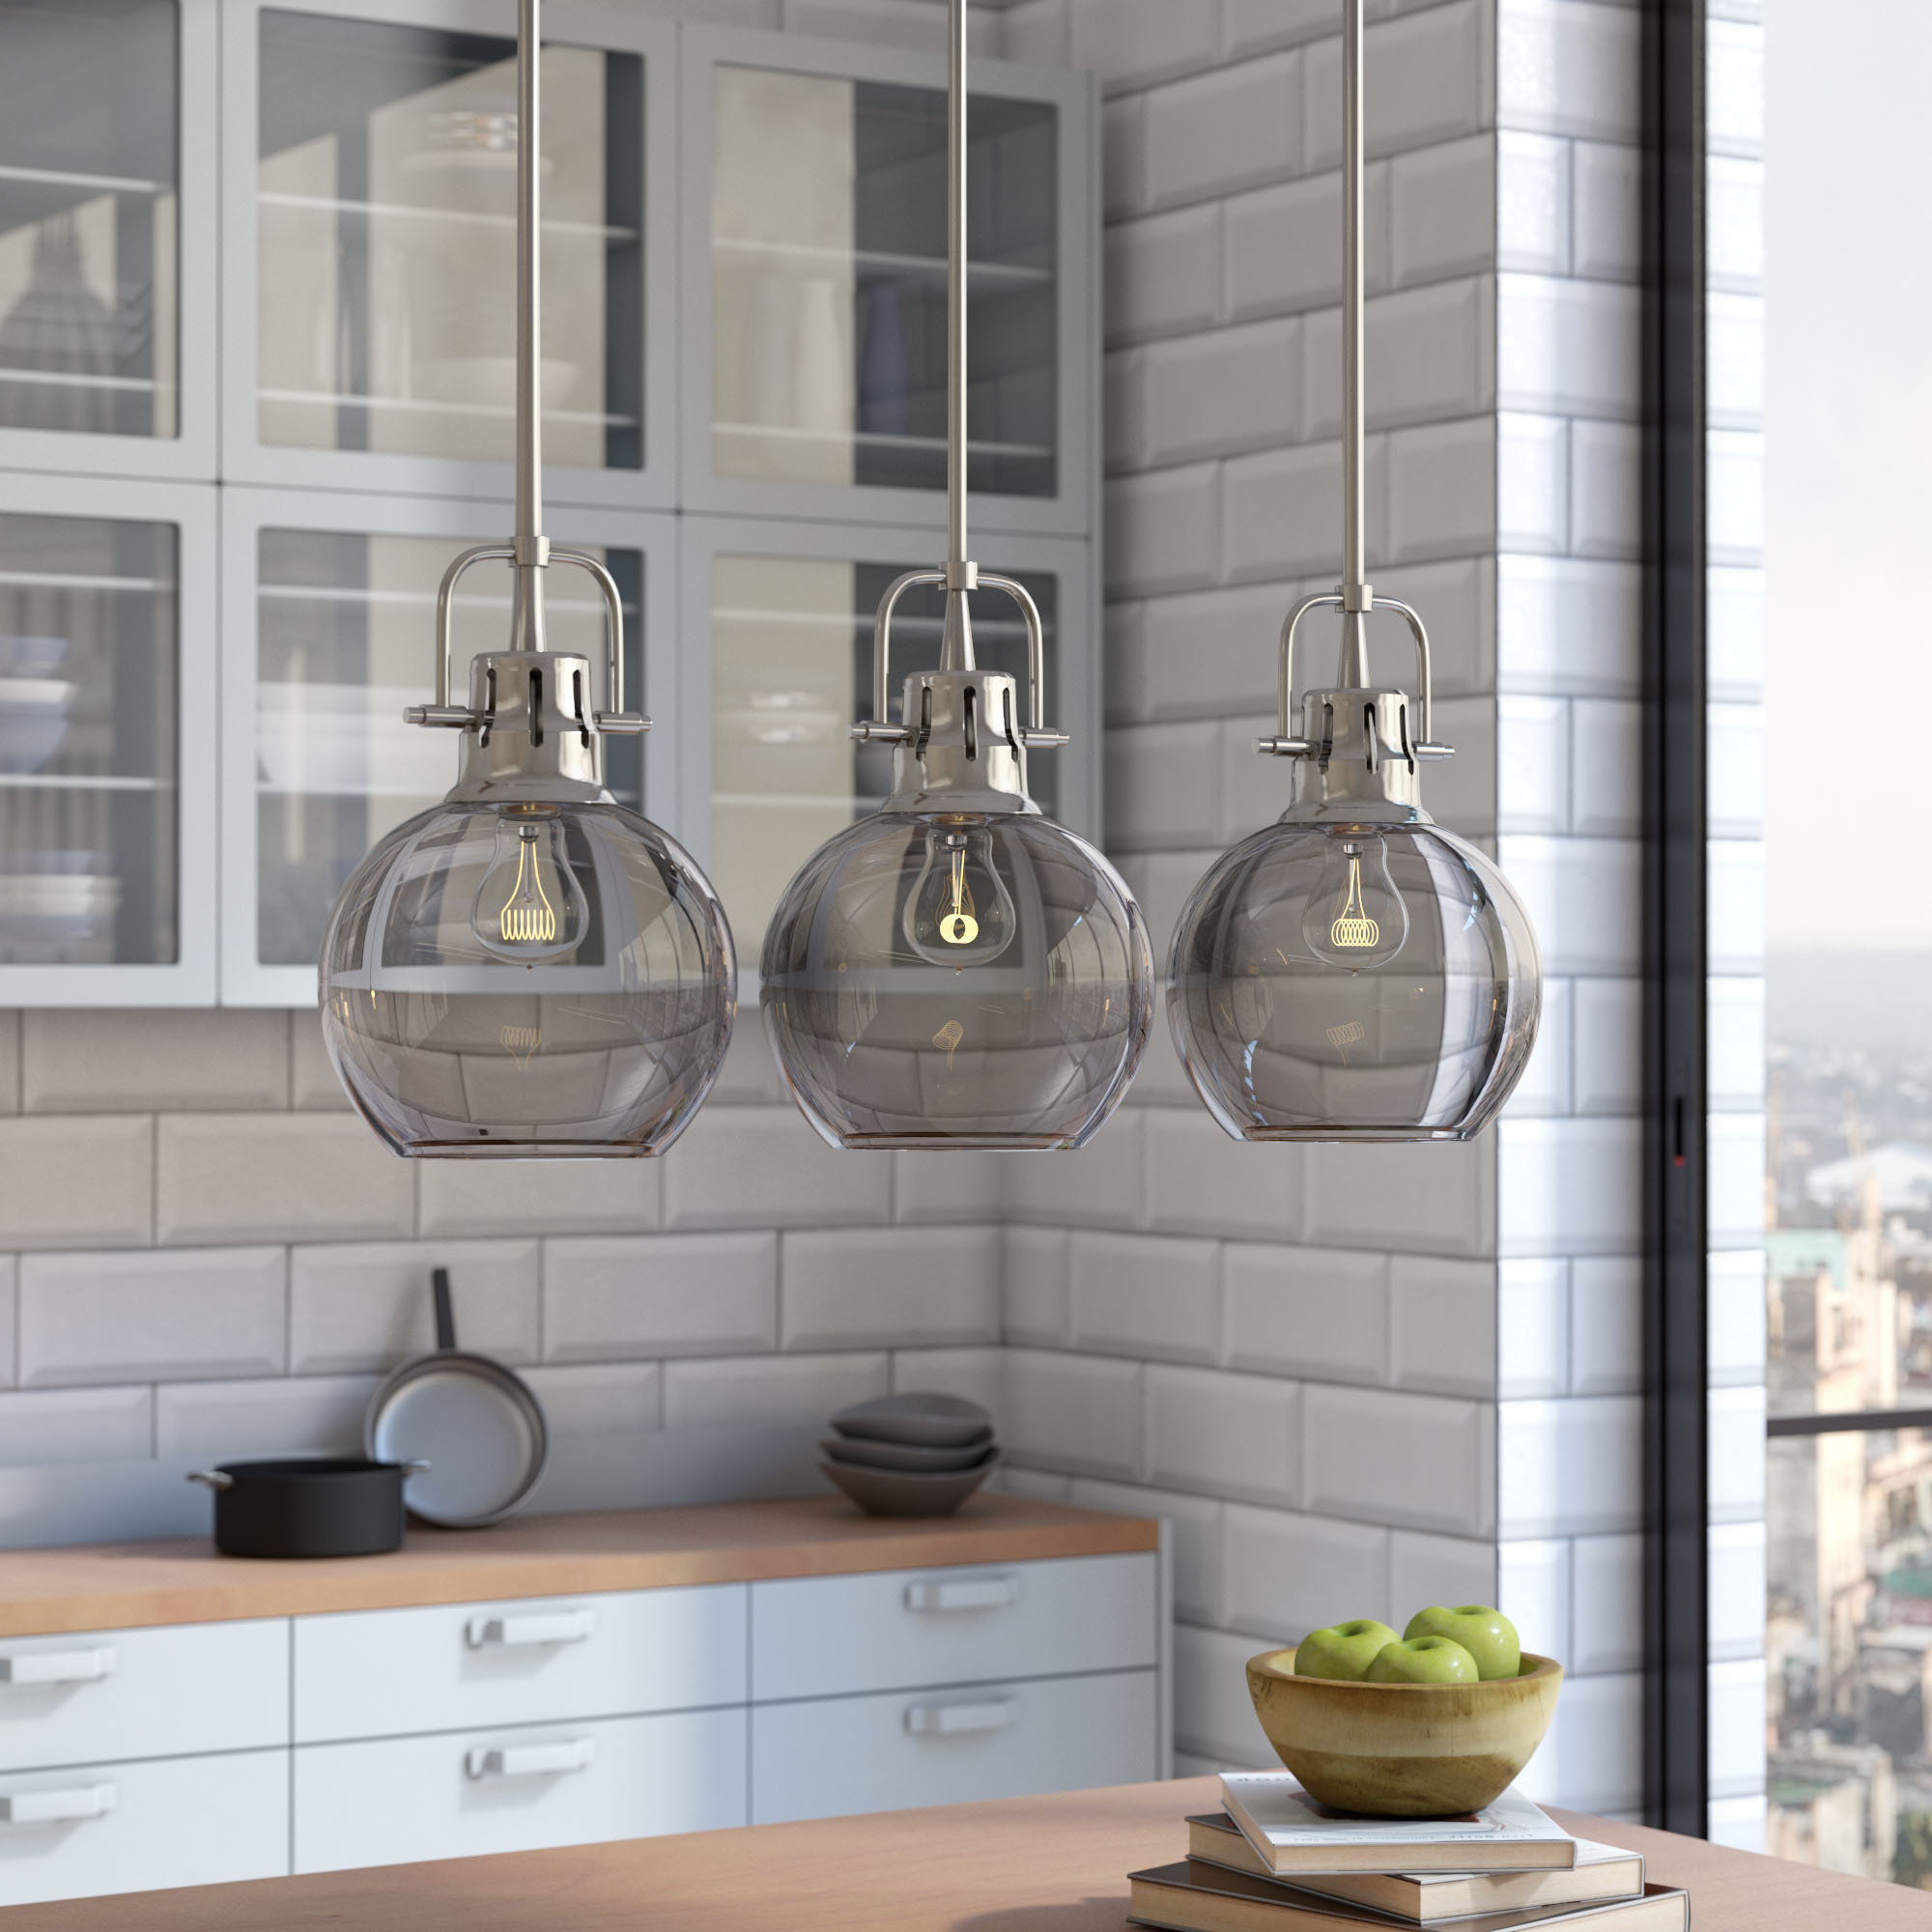 Hinerman 5 Light Kitchen Island Pendants in Widely used Gold Kitchen Lighting